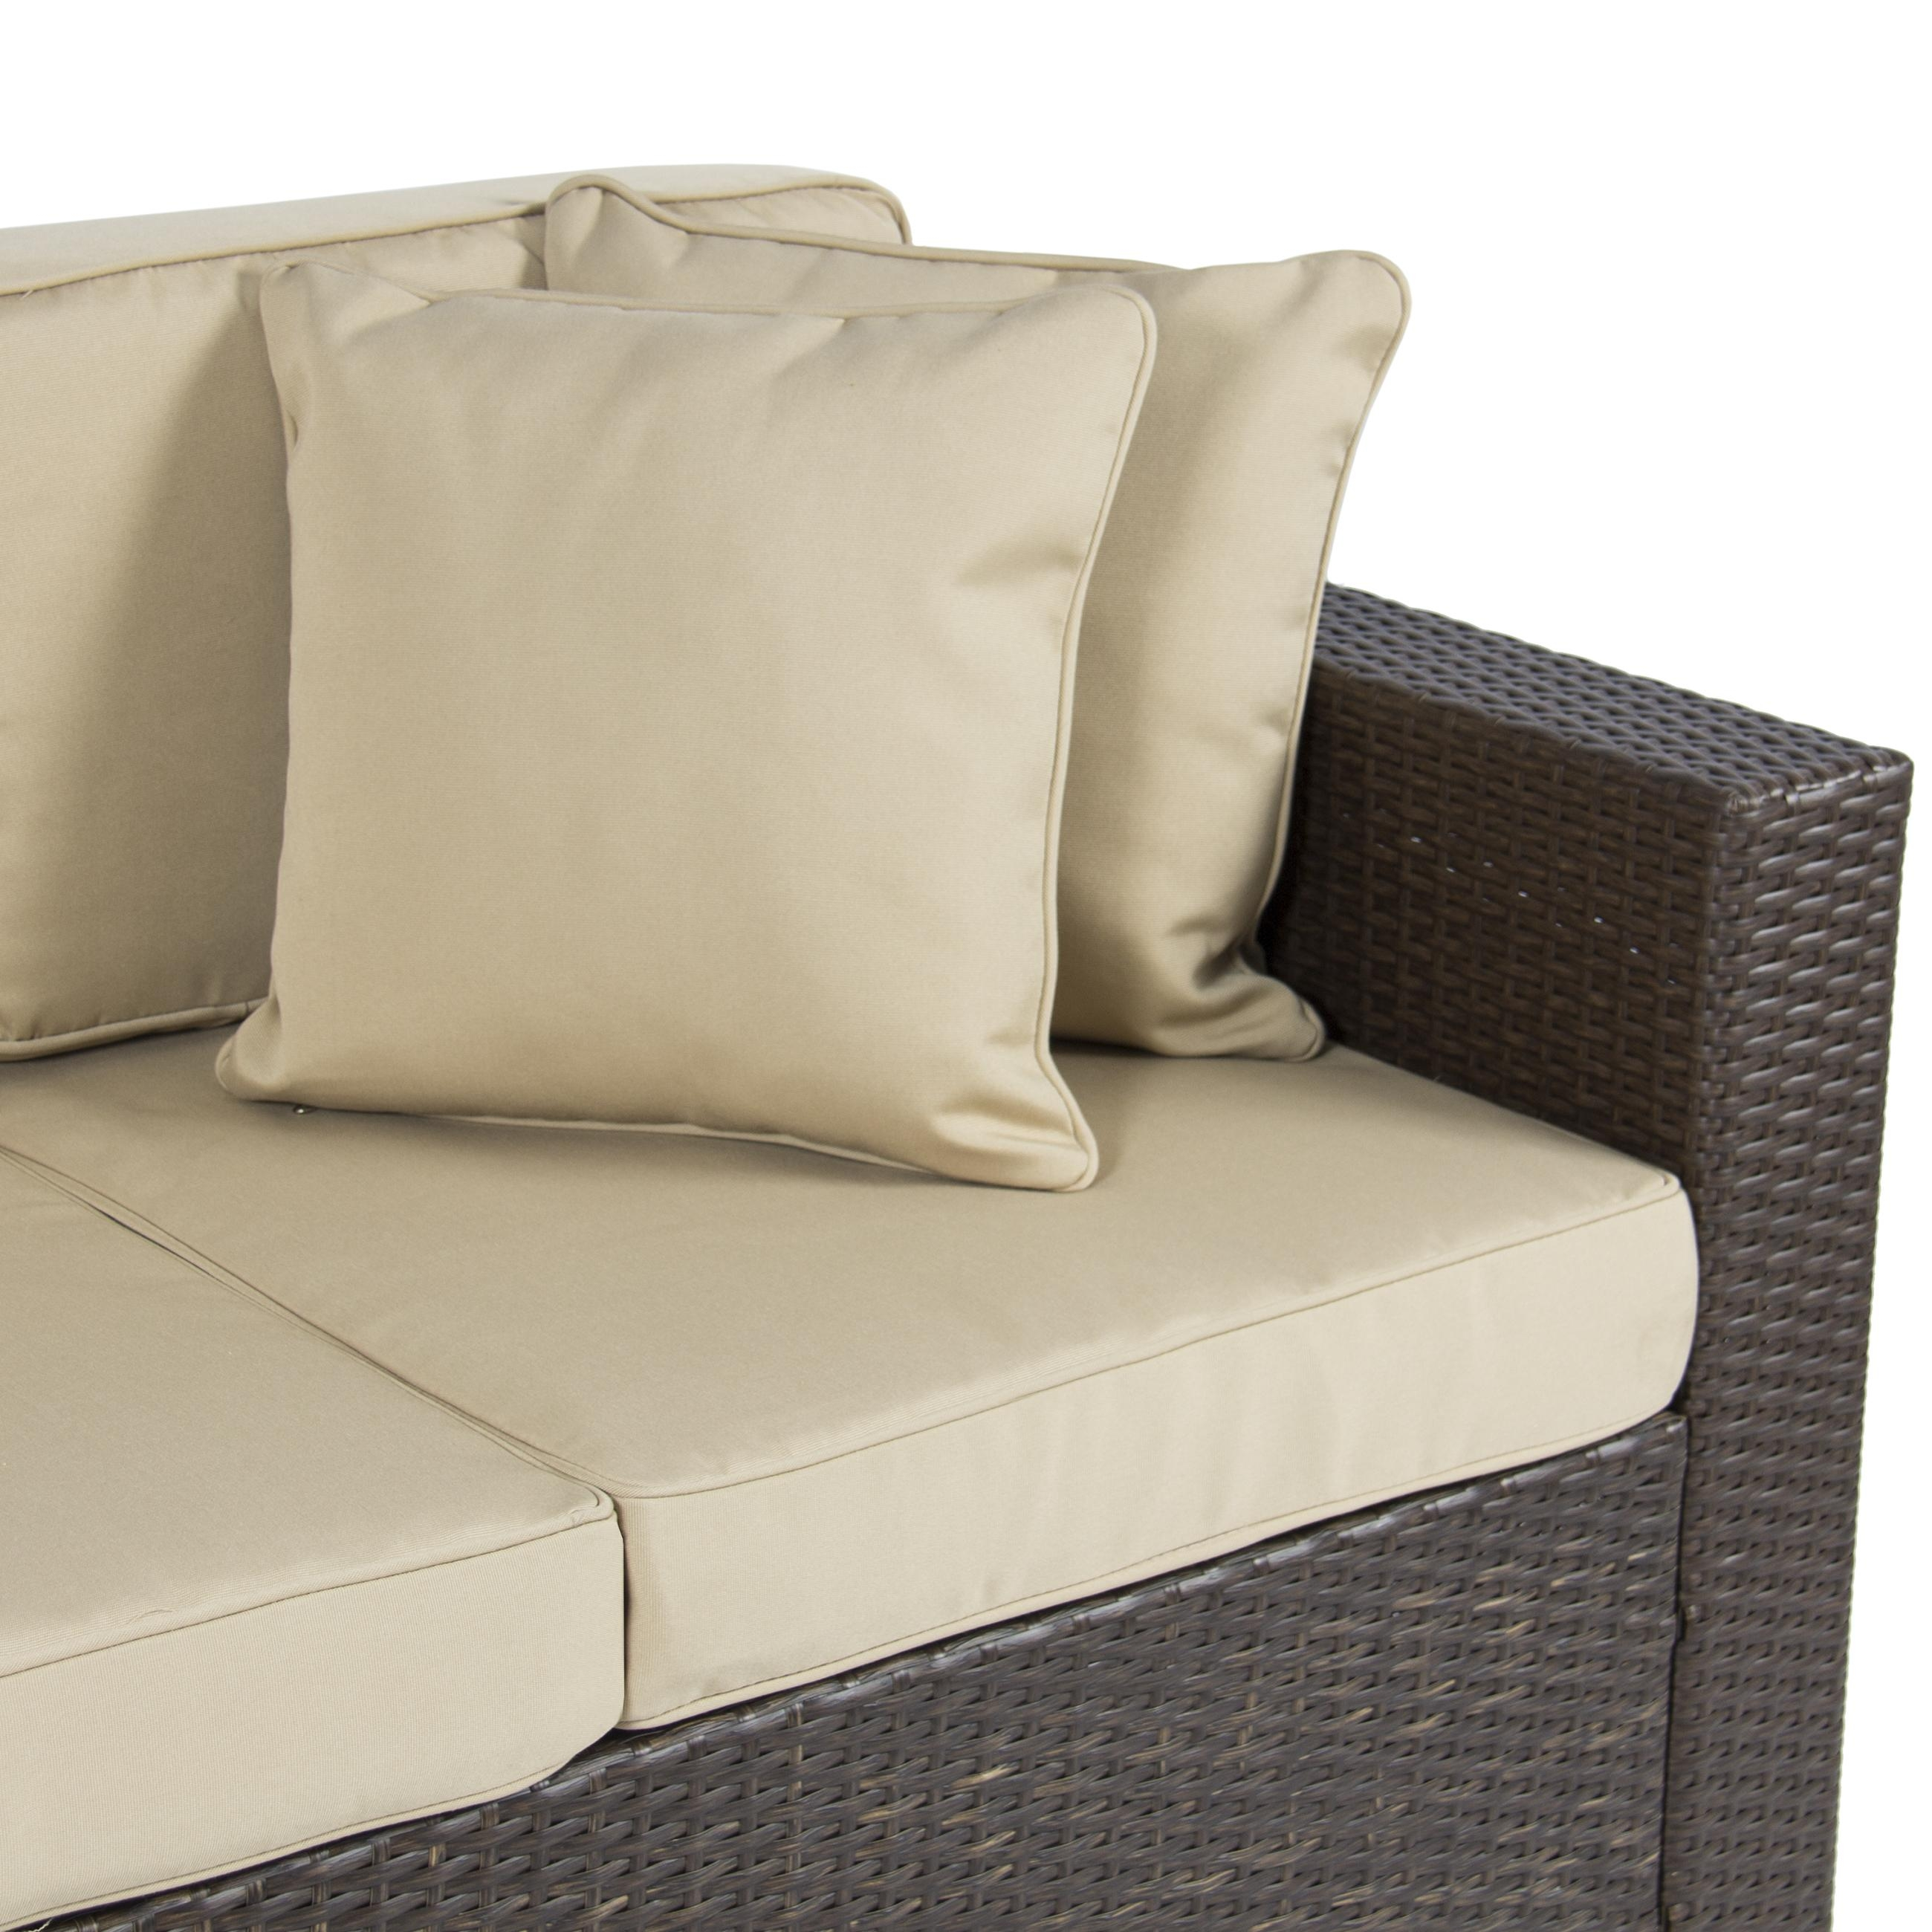 Outdoor Wicker Patio Furniture Sofa 3 Seater Luxury Comfort Brown With Comfortable Sofas And Chairs (View 9 of 20)